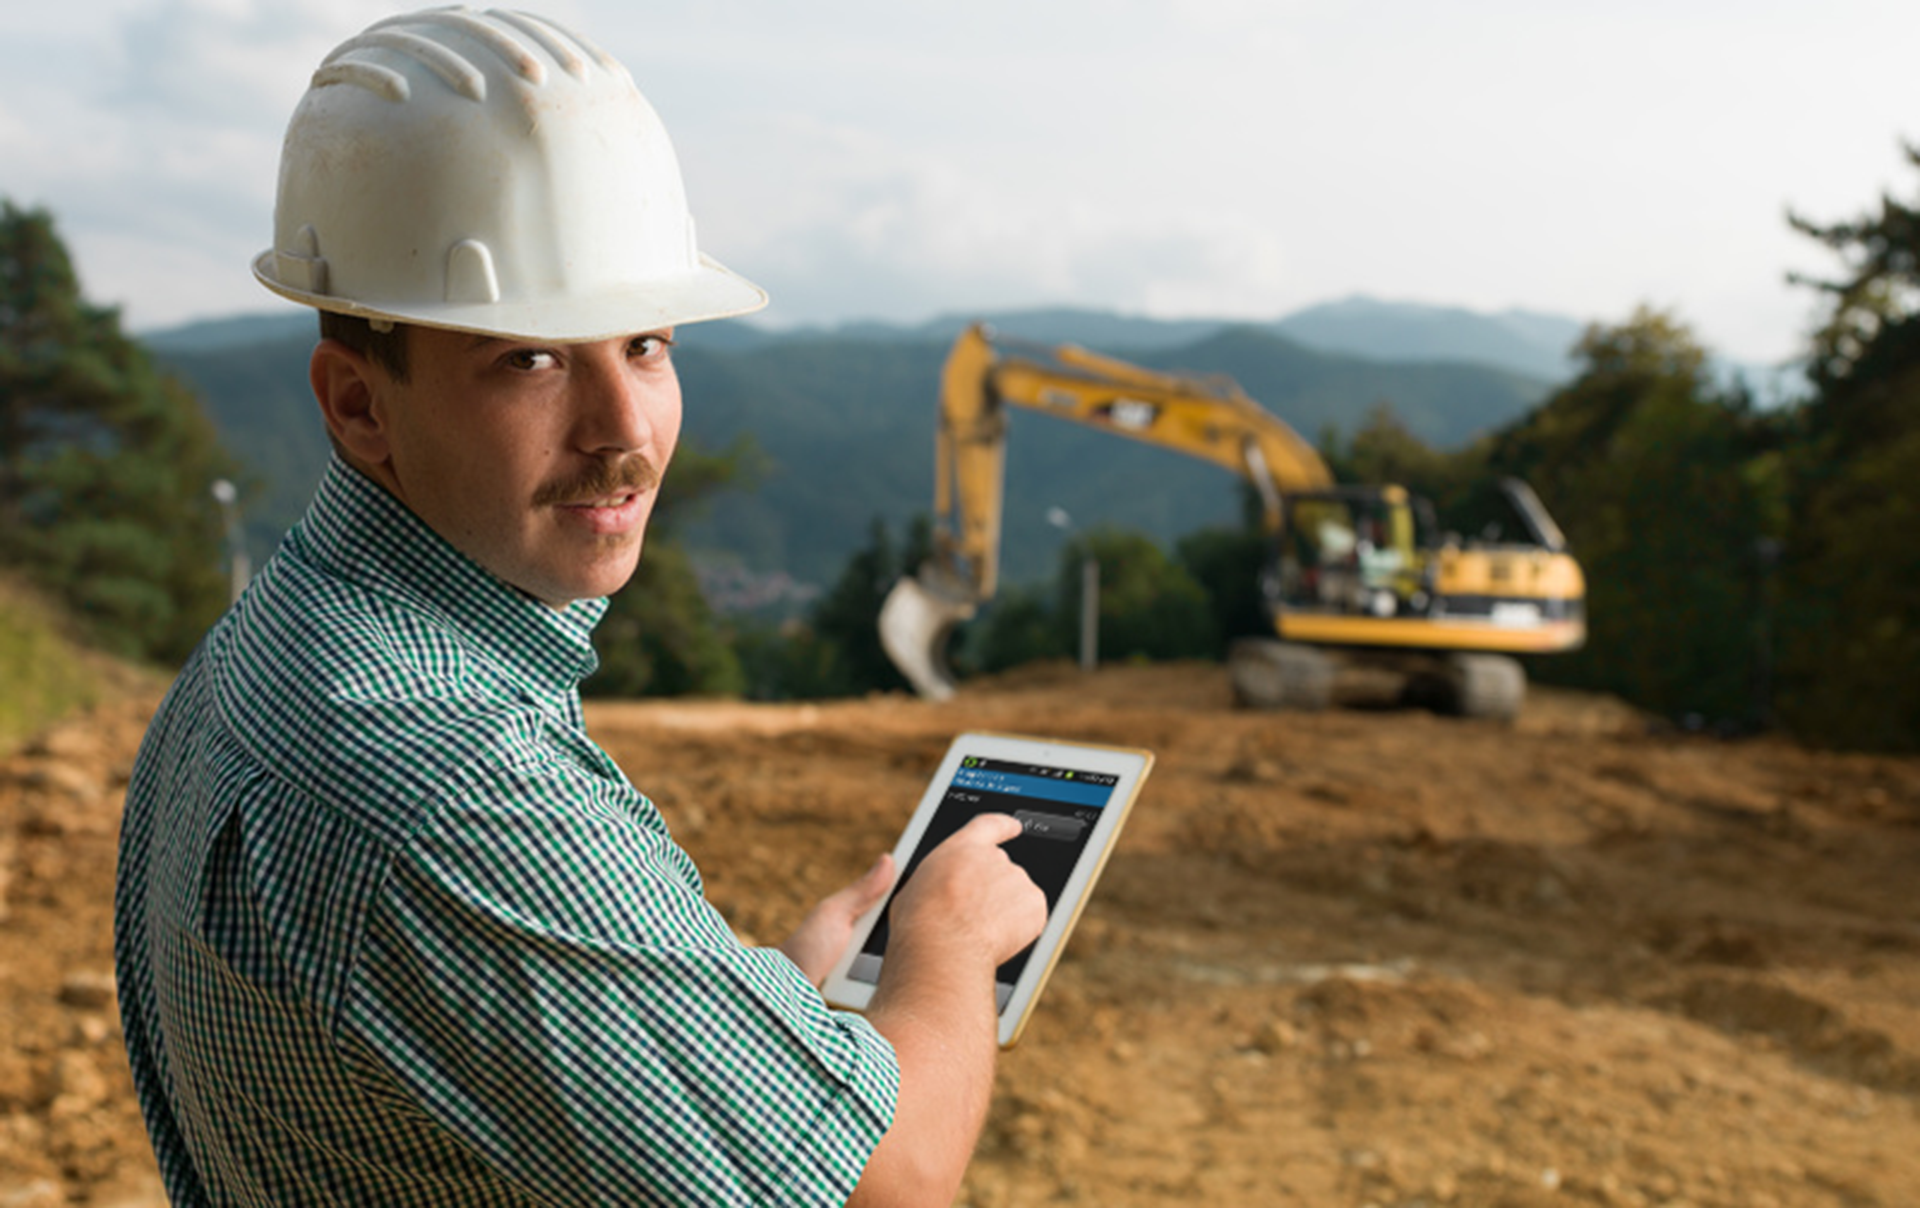 construction worker with a tablet in front of an excavator